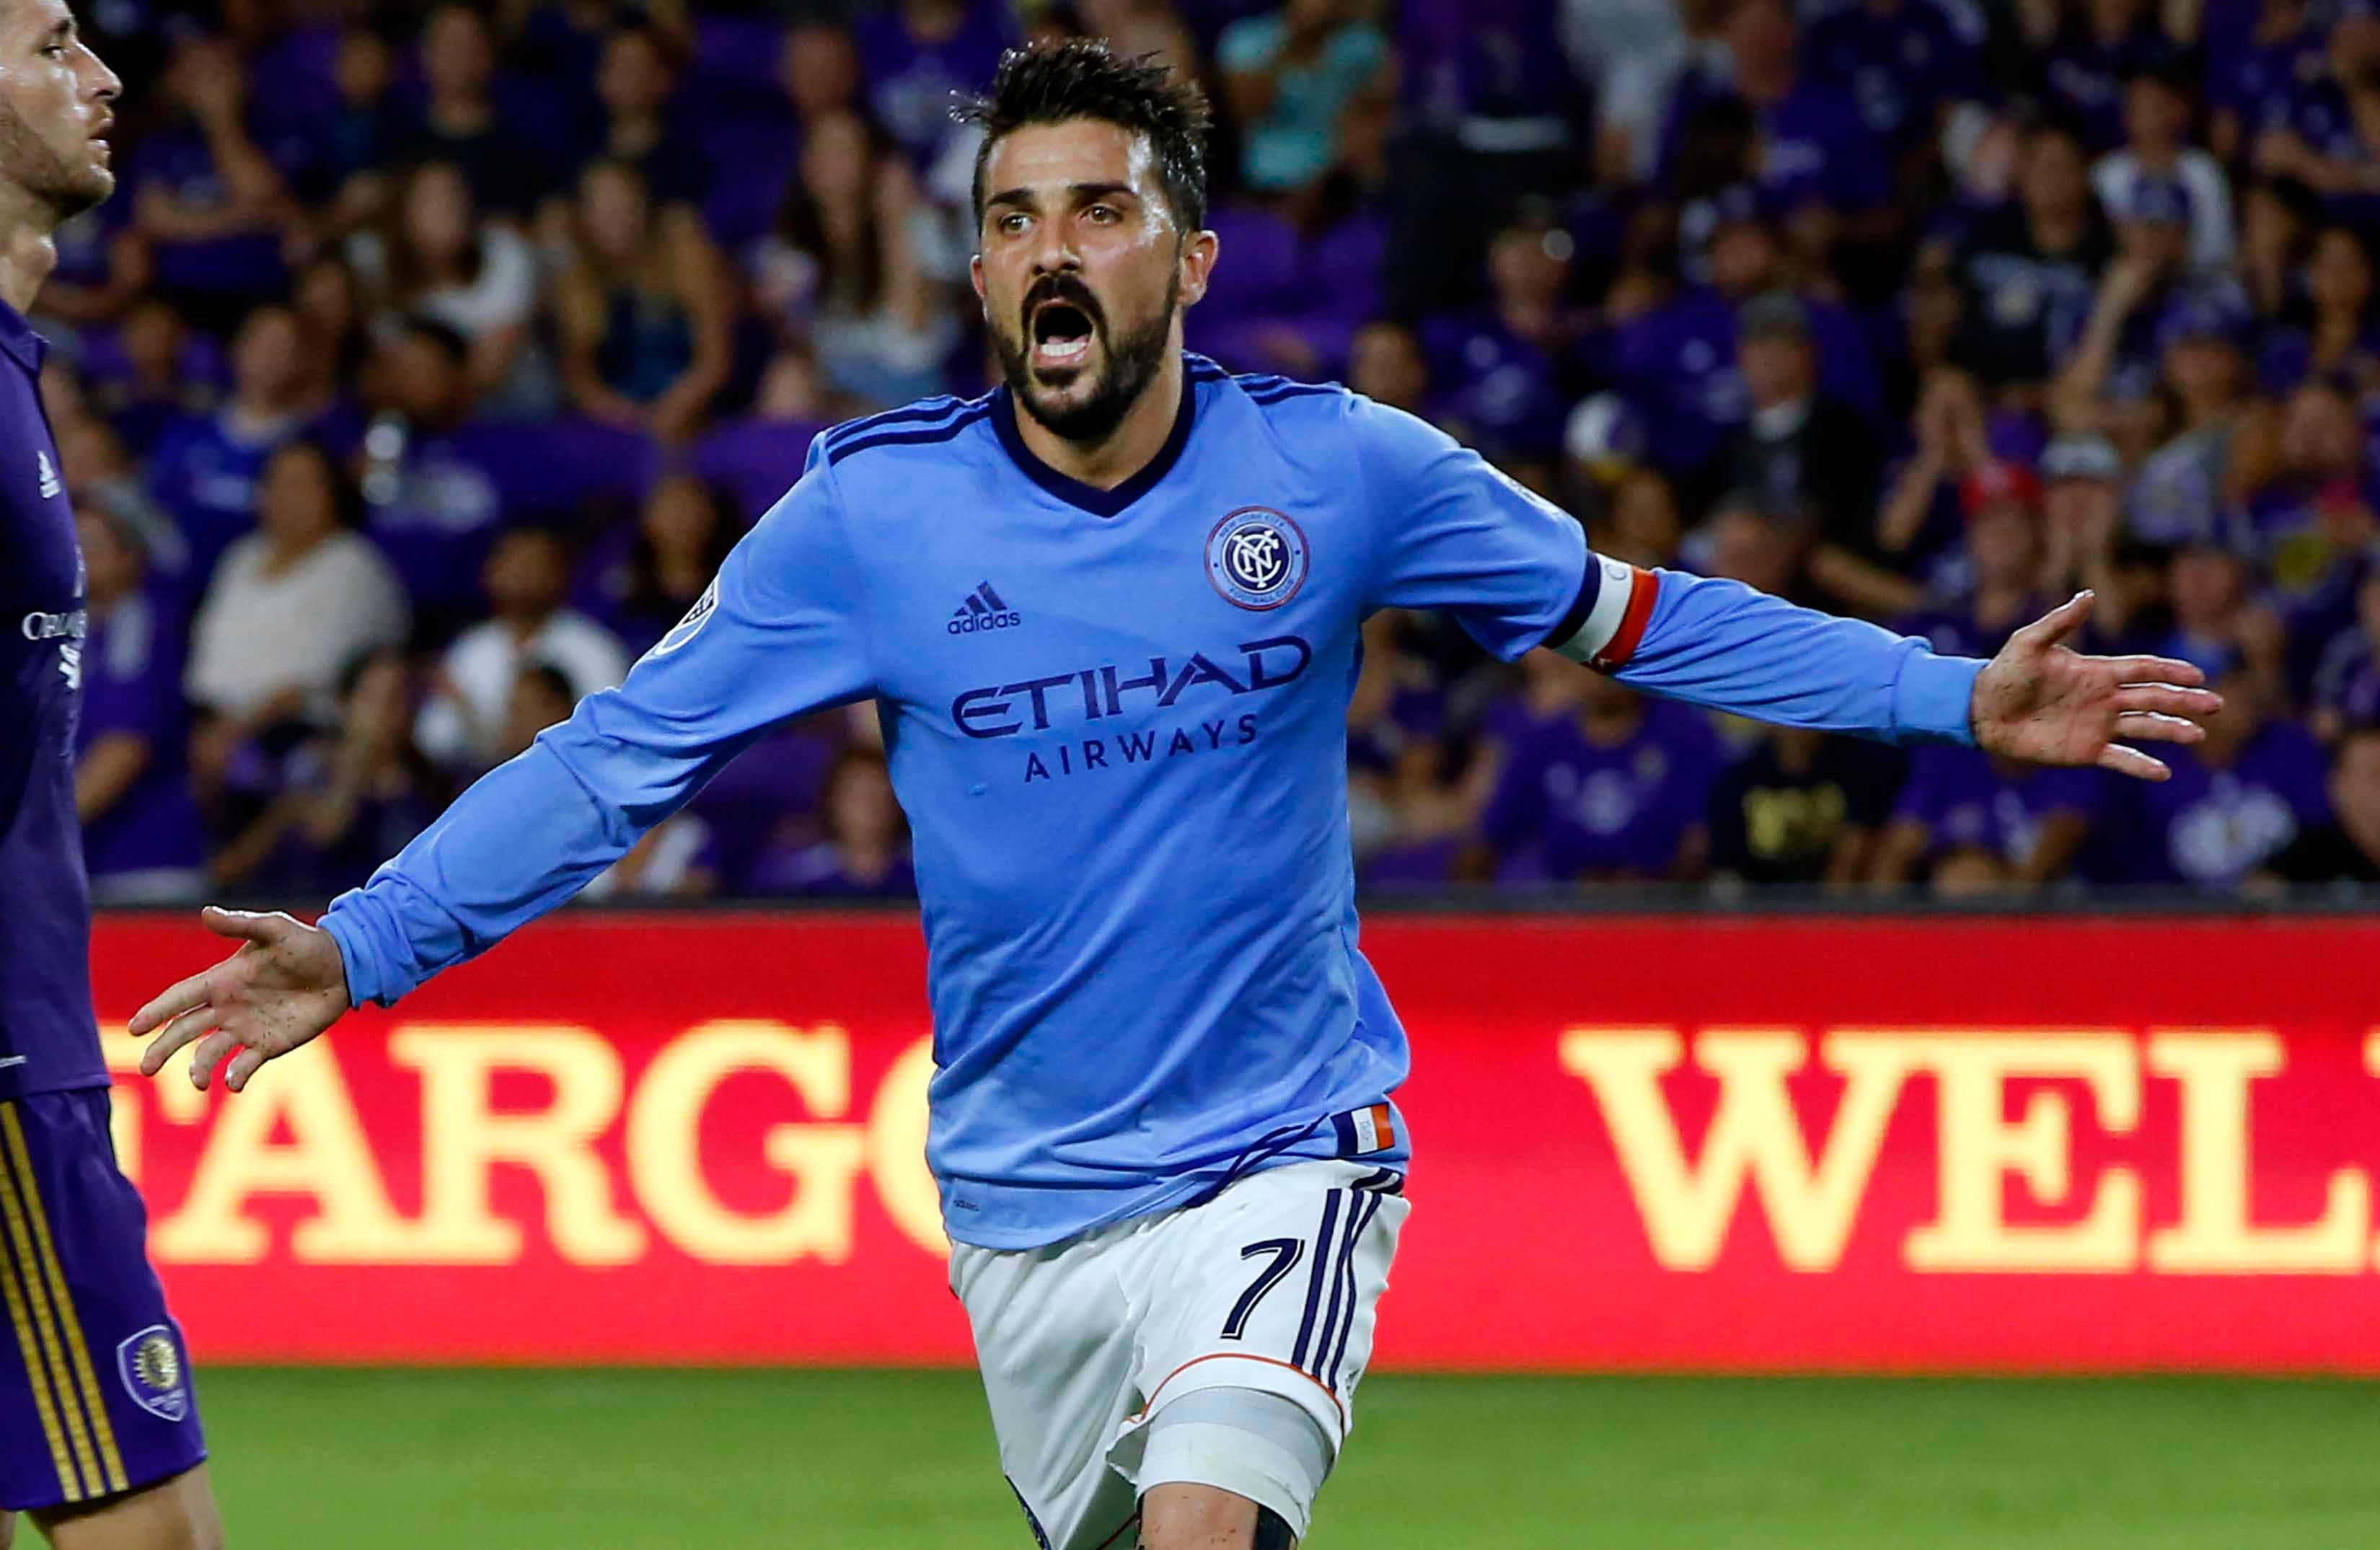 David Villa of NYCFC  is (still) living up to the hype